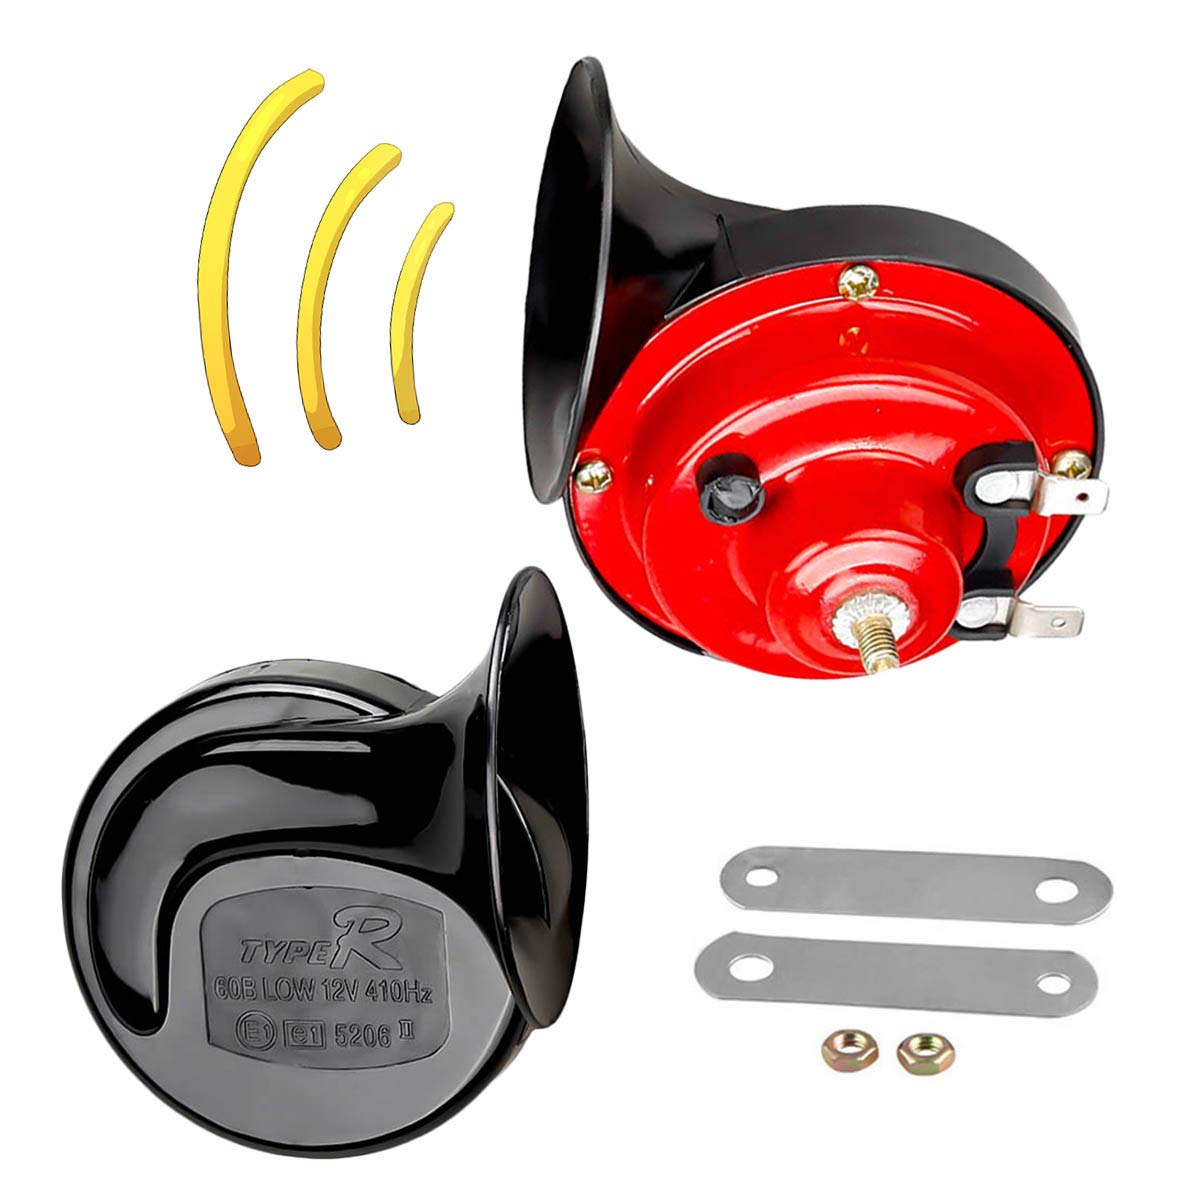 Garberiel 2 Pair Auto Car Vehicle Horn with Bracket Universal 12V 135db Loud Dual Waterproof Horn for All Motorcycle